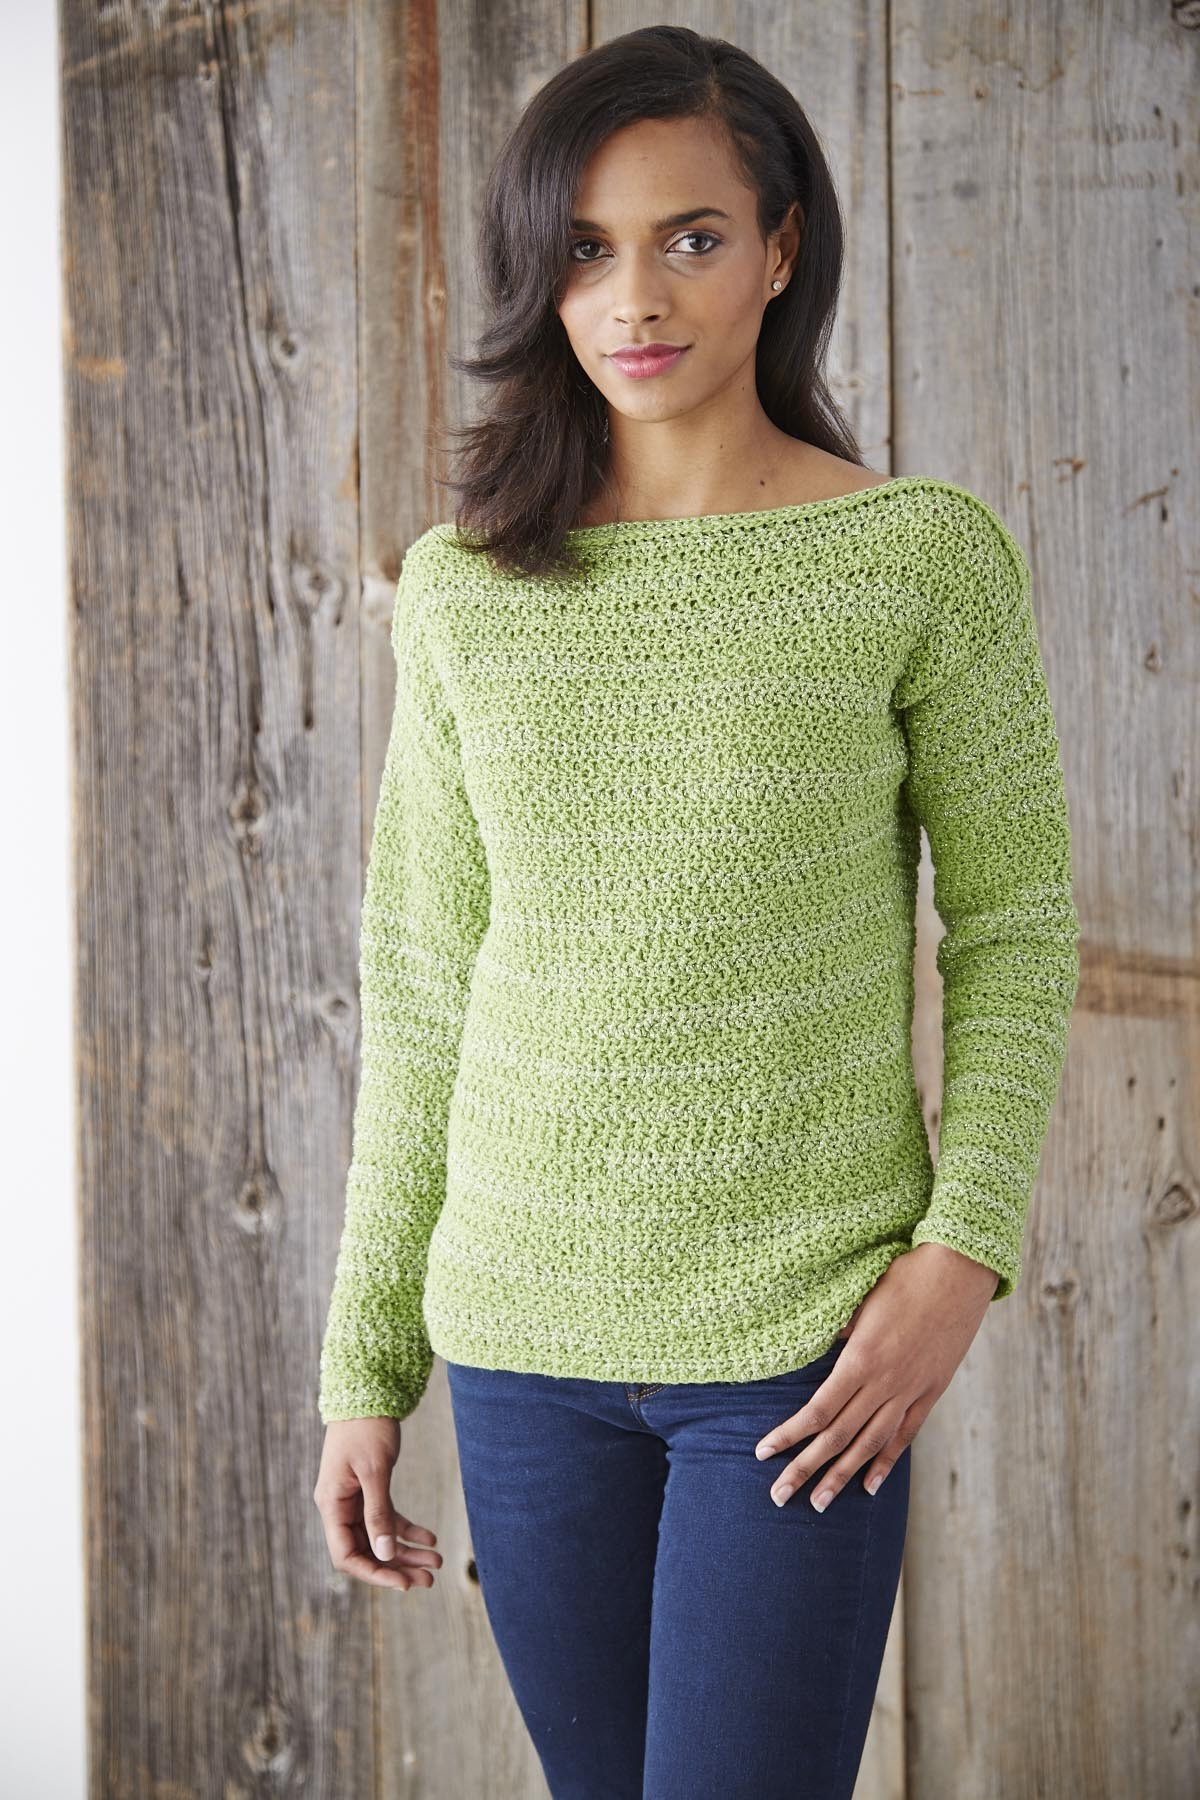 Sweater Pattern Inspirational Easy Crochet Women S Sweater Pattern Crochet and Knit Of New 40 Photos Sweater Pattern